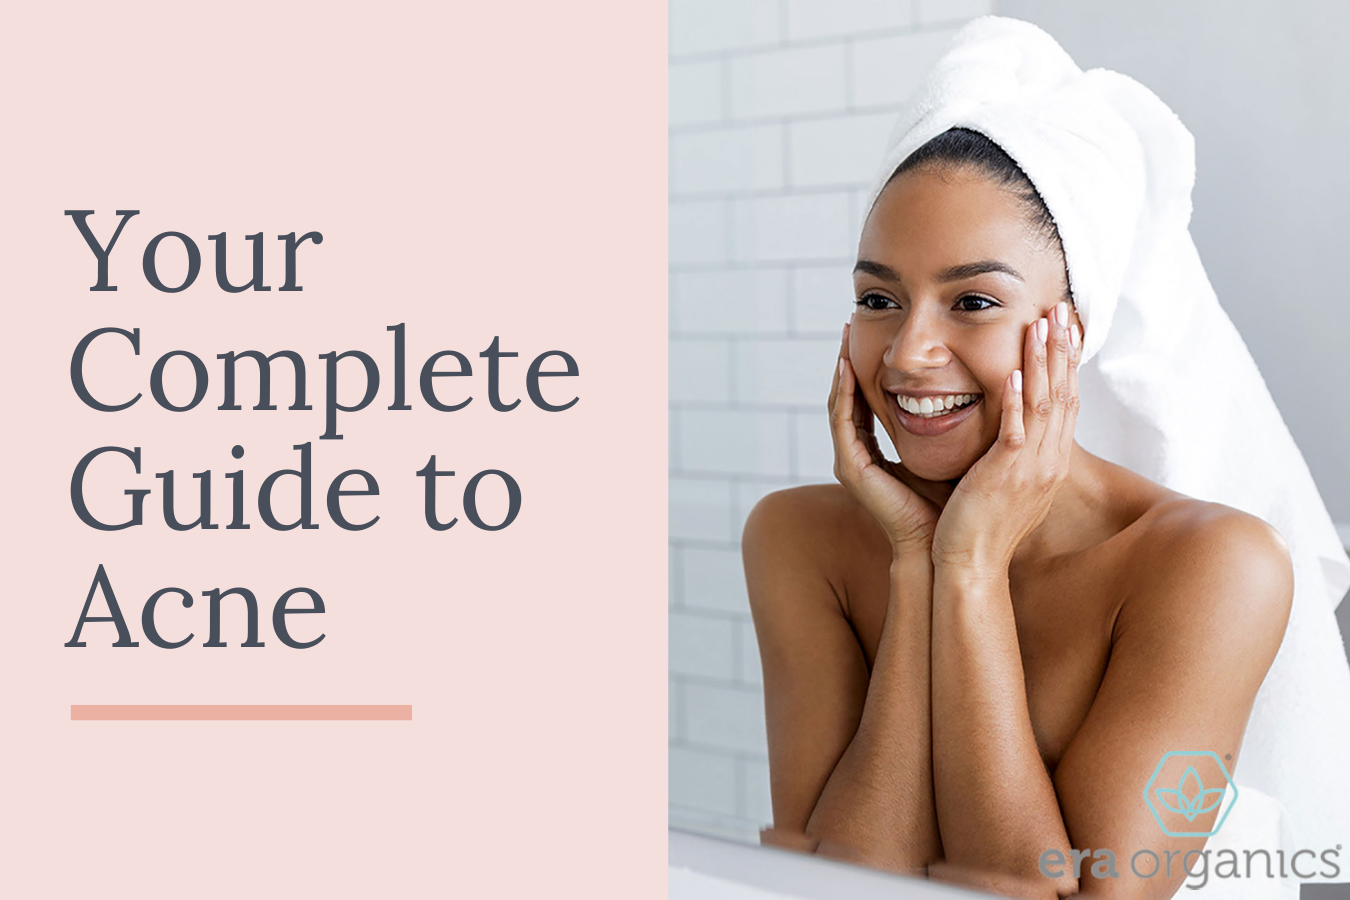 Your Complete Guide To Acne